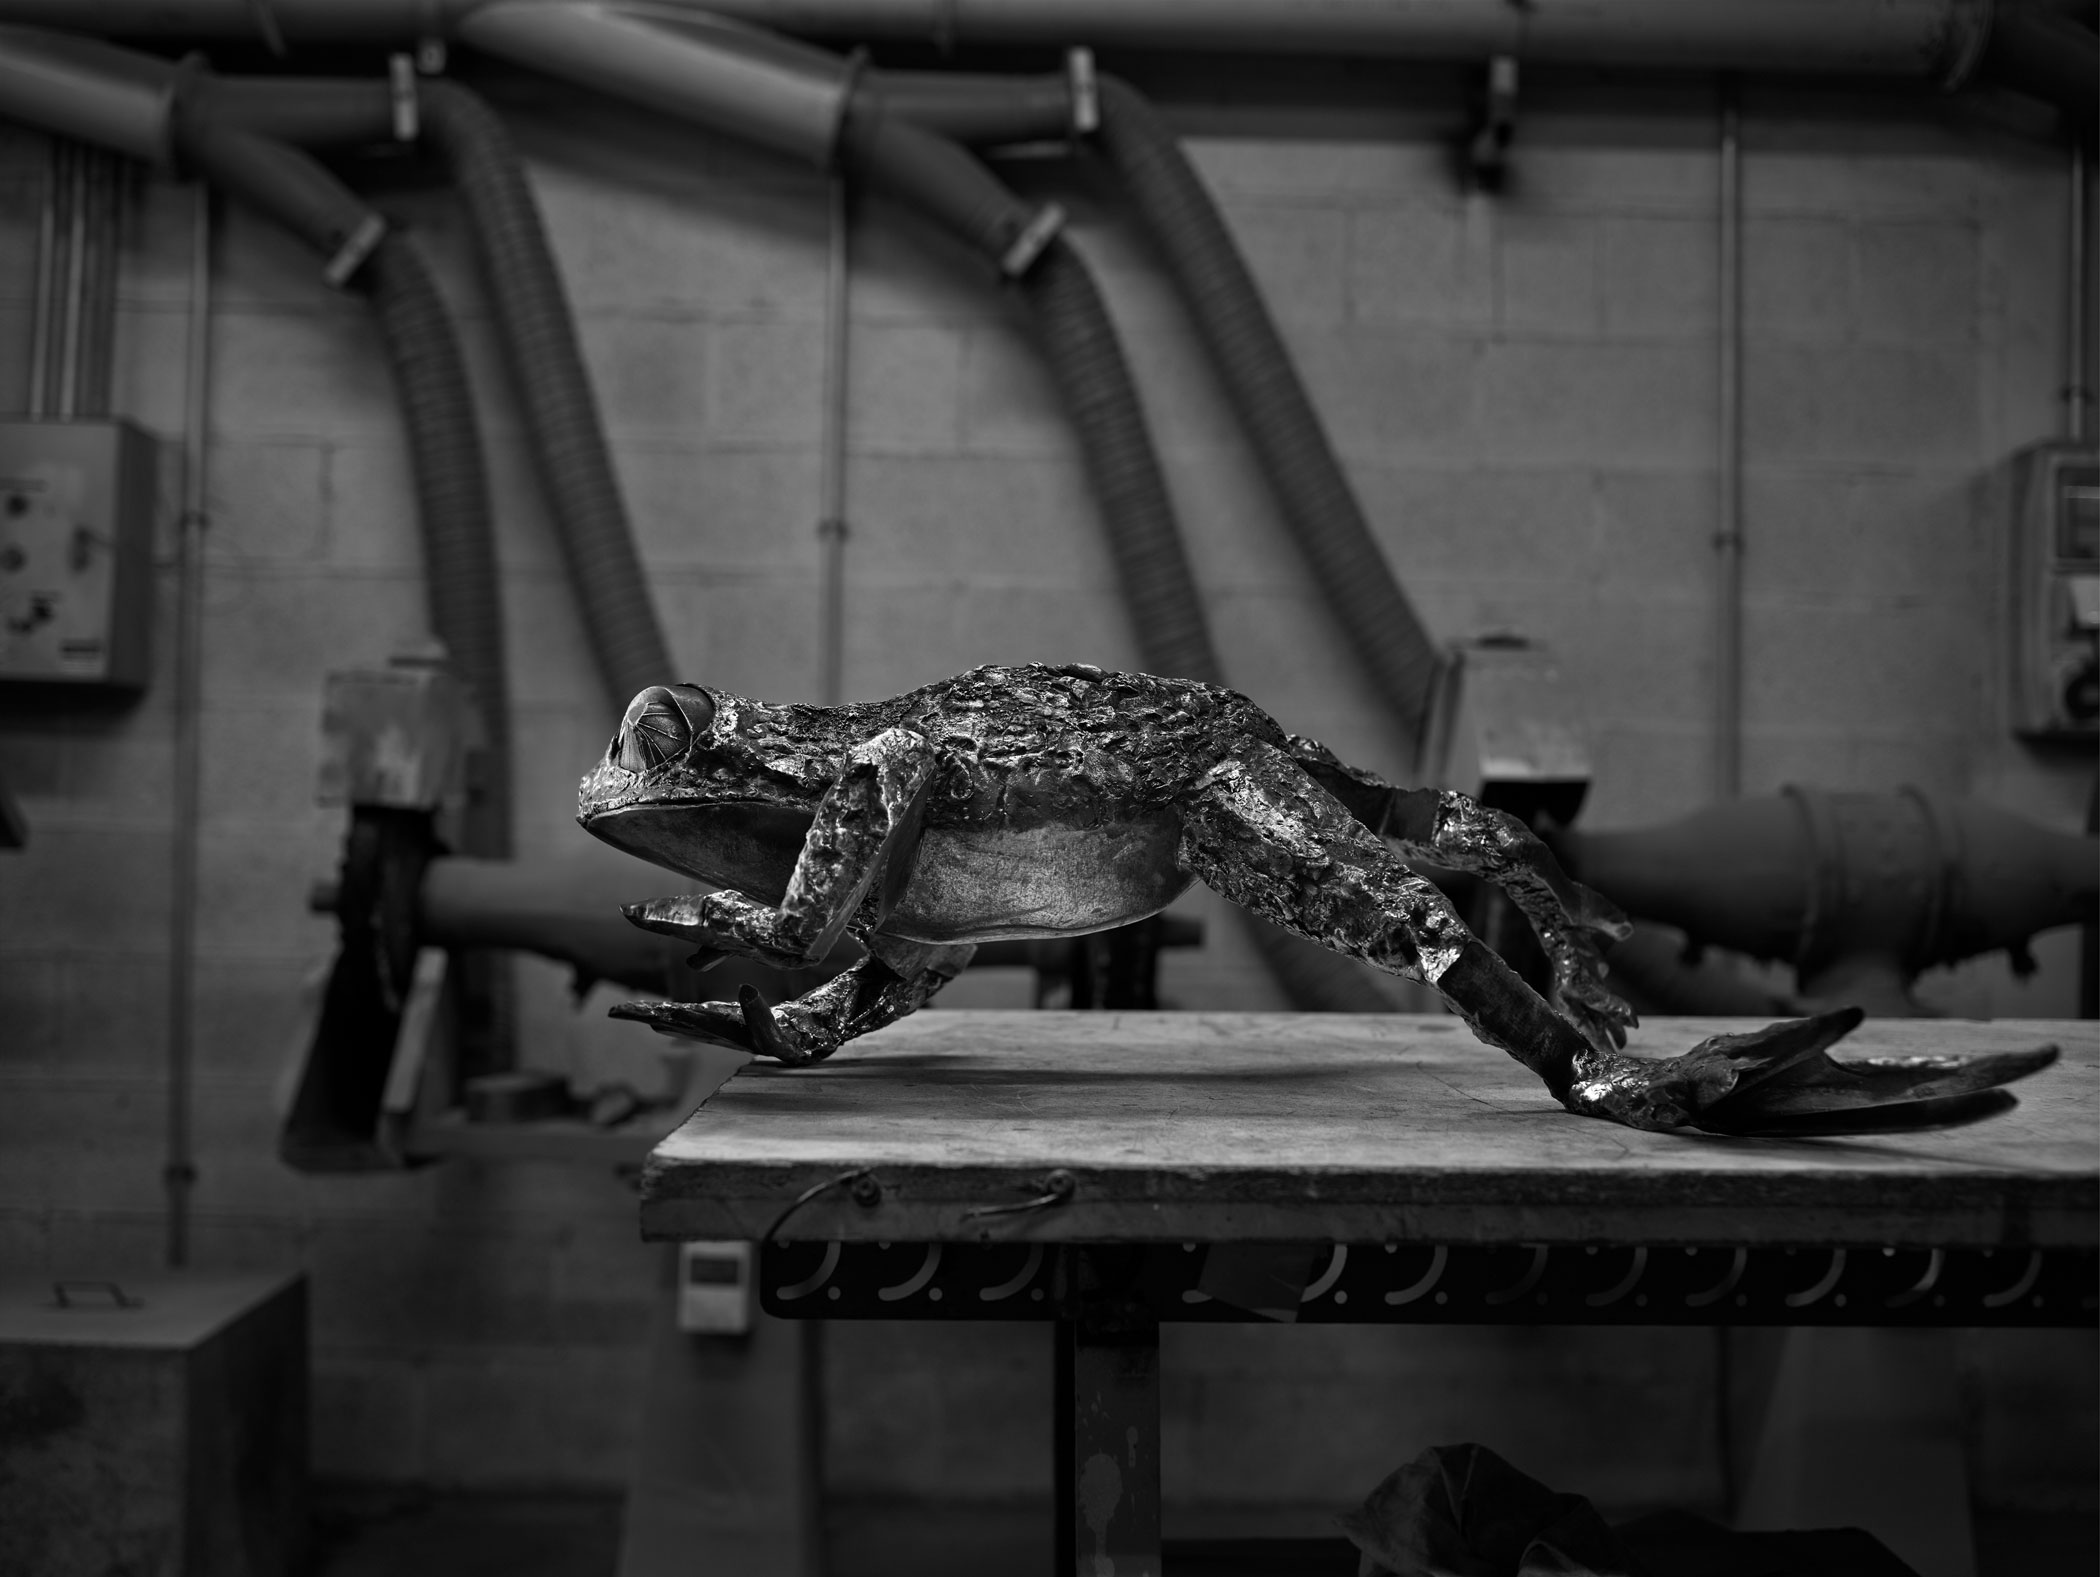 Katherine Taylor FROGS project, finishing phase. Stainless steel. Alfa Arte